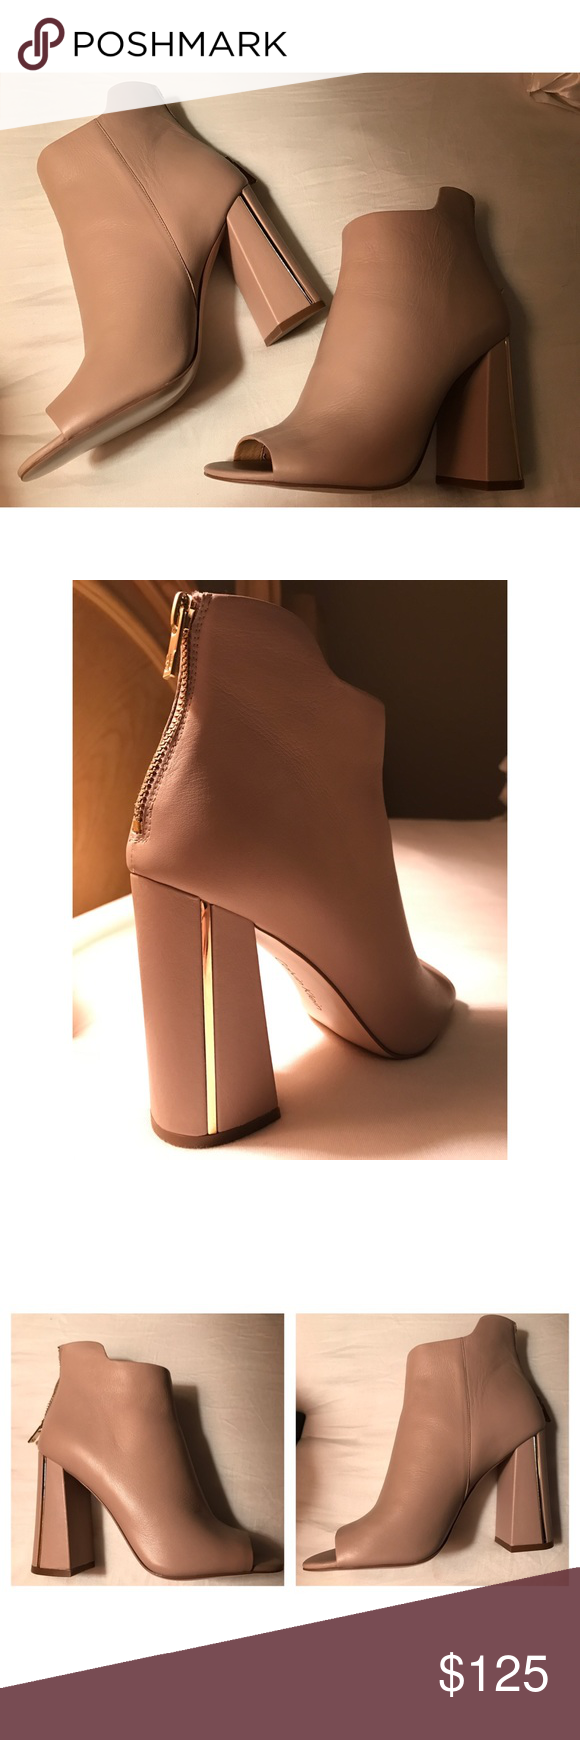 NEW! Calvin Klein Nude Peep Toe booties Size 7. Nude Calvin Klein peep toe booties with chunky heel and gold piping. Zipper closure on back of heel. No scuffs, never worn. Calvin Klein Shoes Ankle Boots & Booties